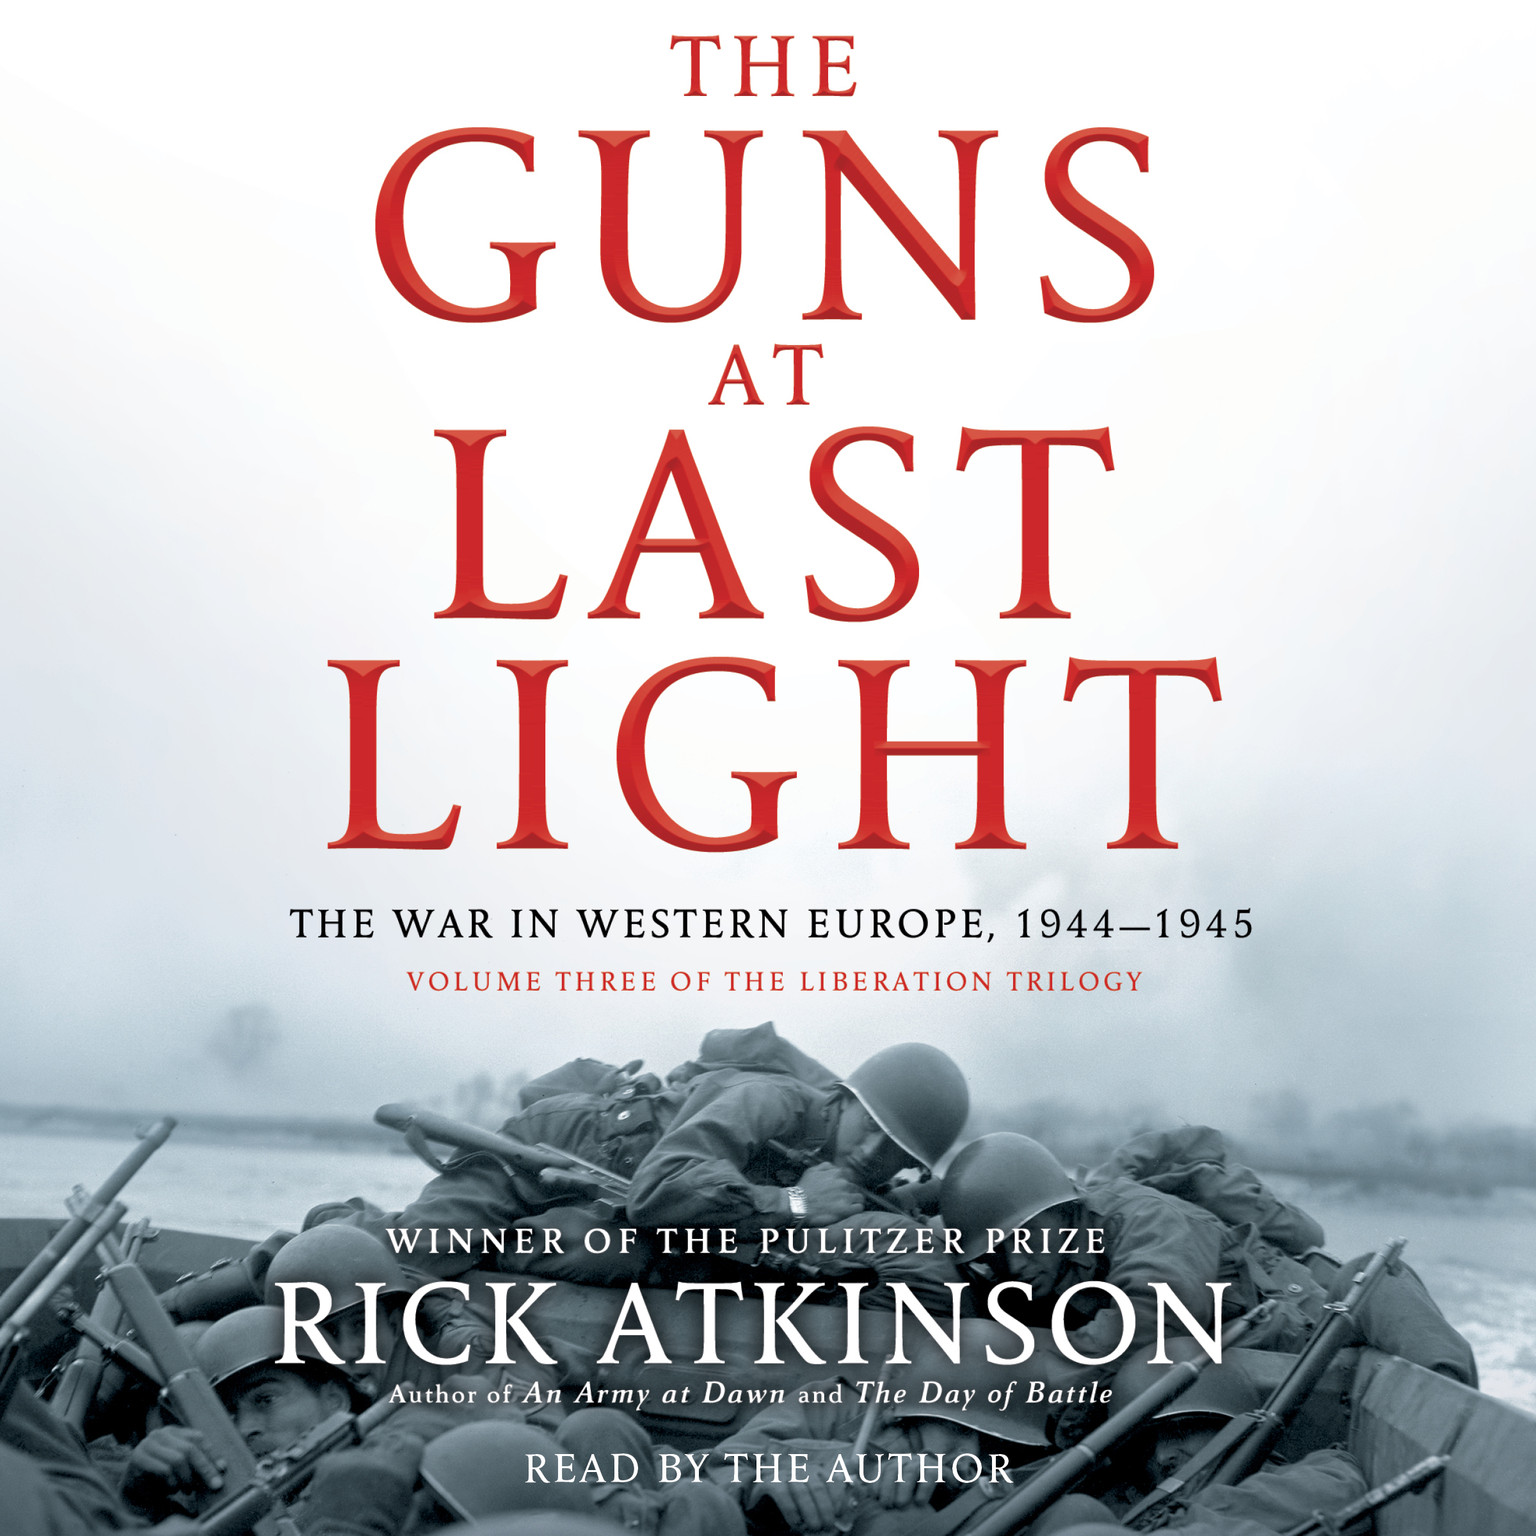 Printable The Guns at Last Light: The War in Western Europe, 1944-1945 Audiobook Cover Art